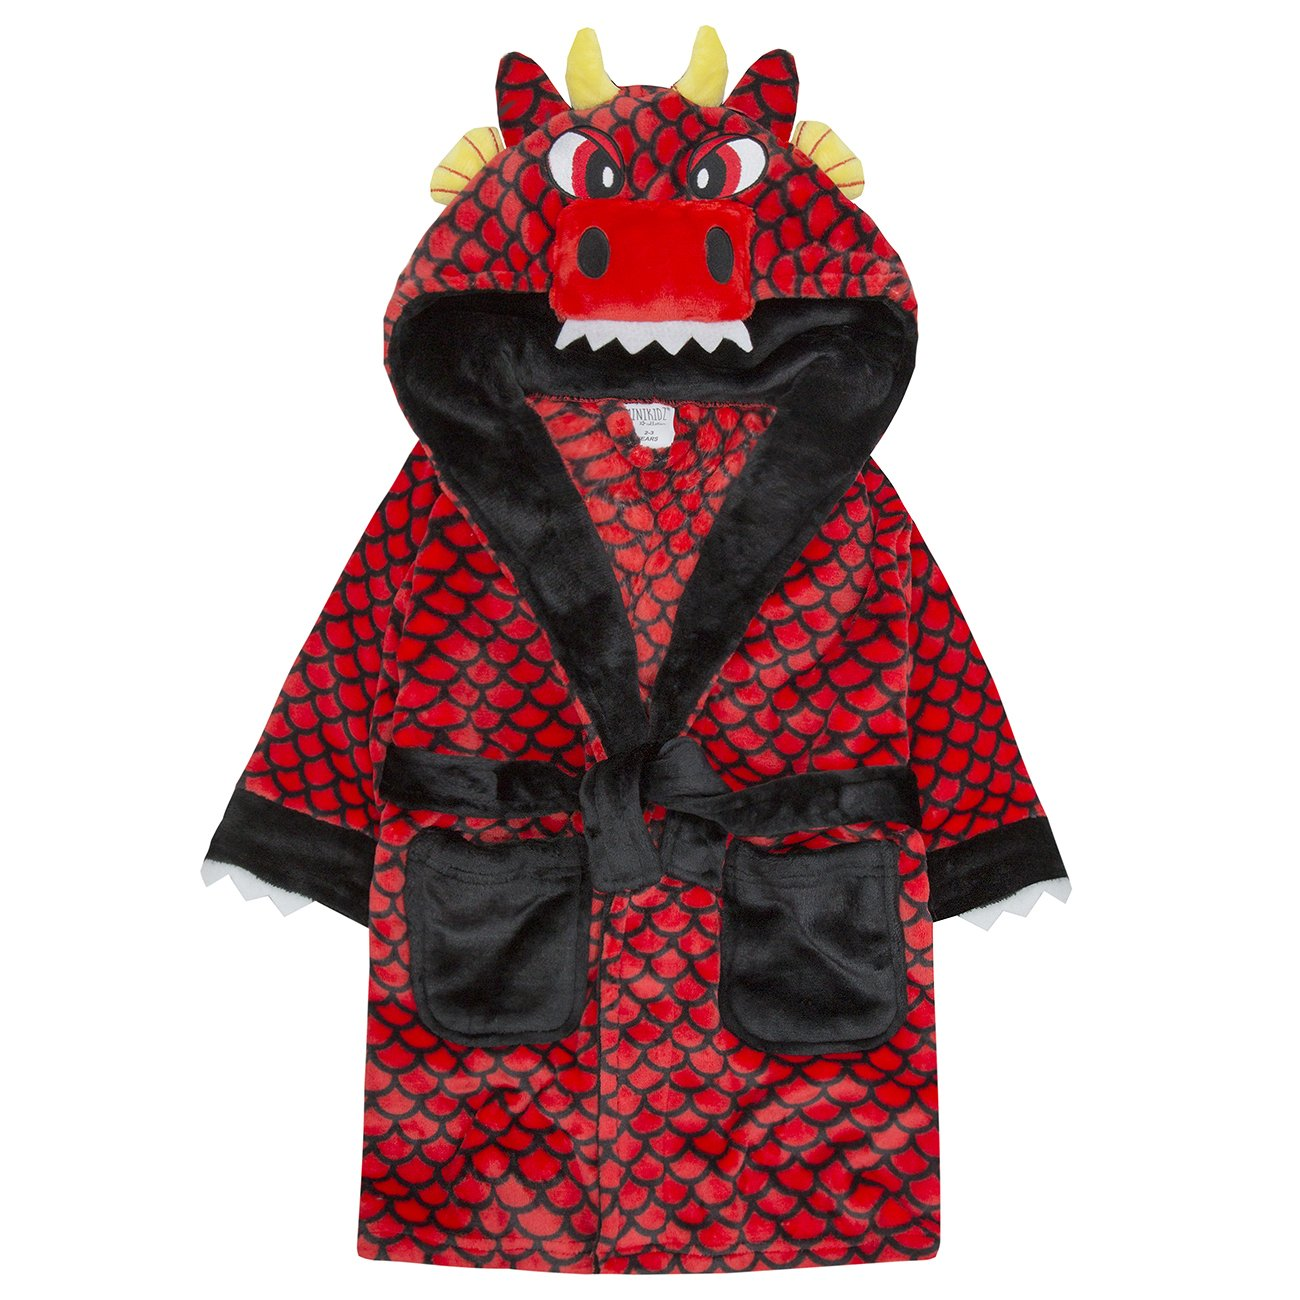 Boys Dressing Gown Hooded Bath Robe Super Soft Coral Fleece Novelty Dragon Style